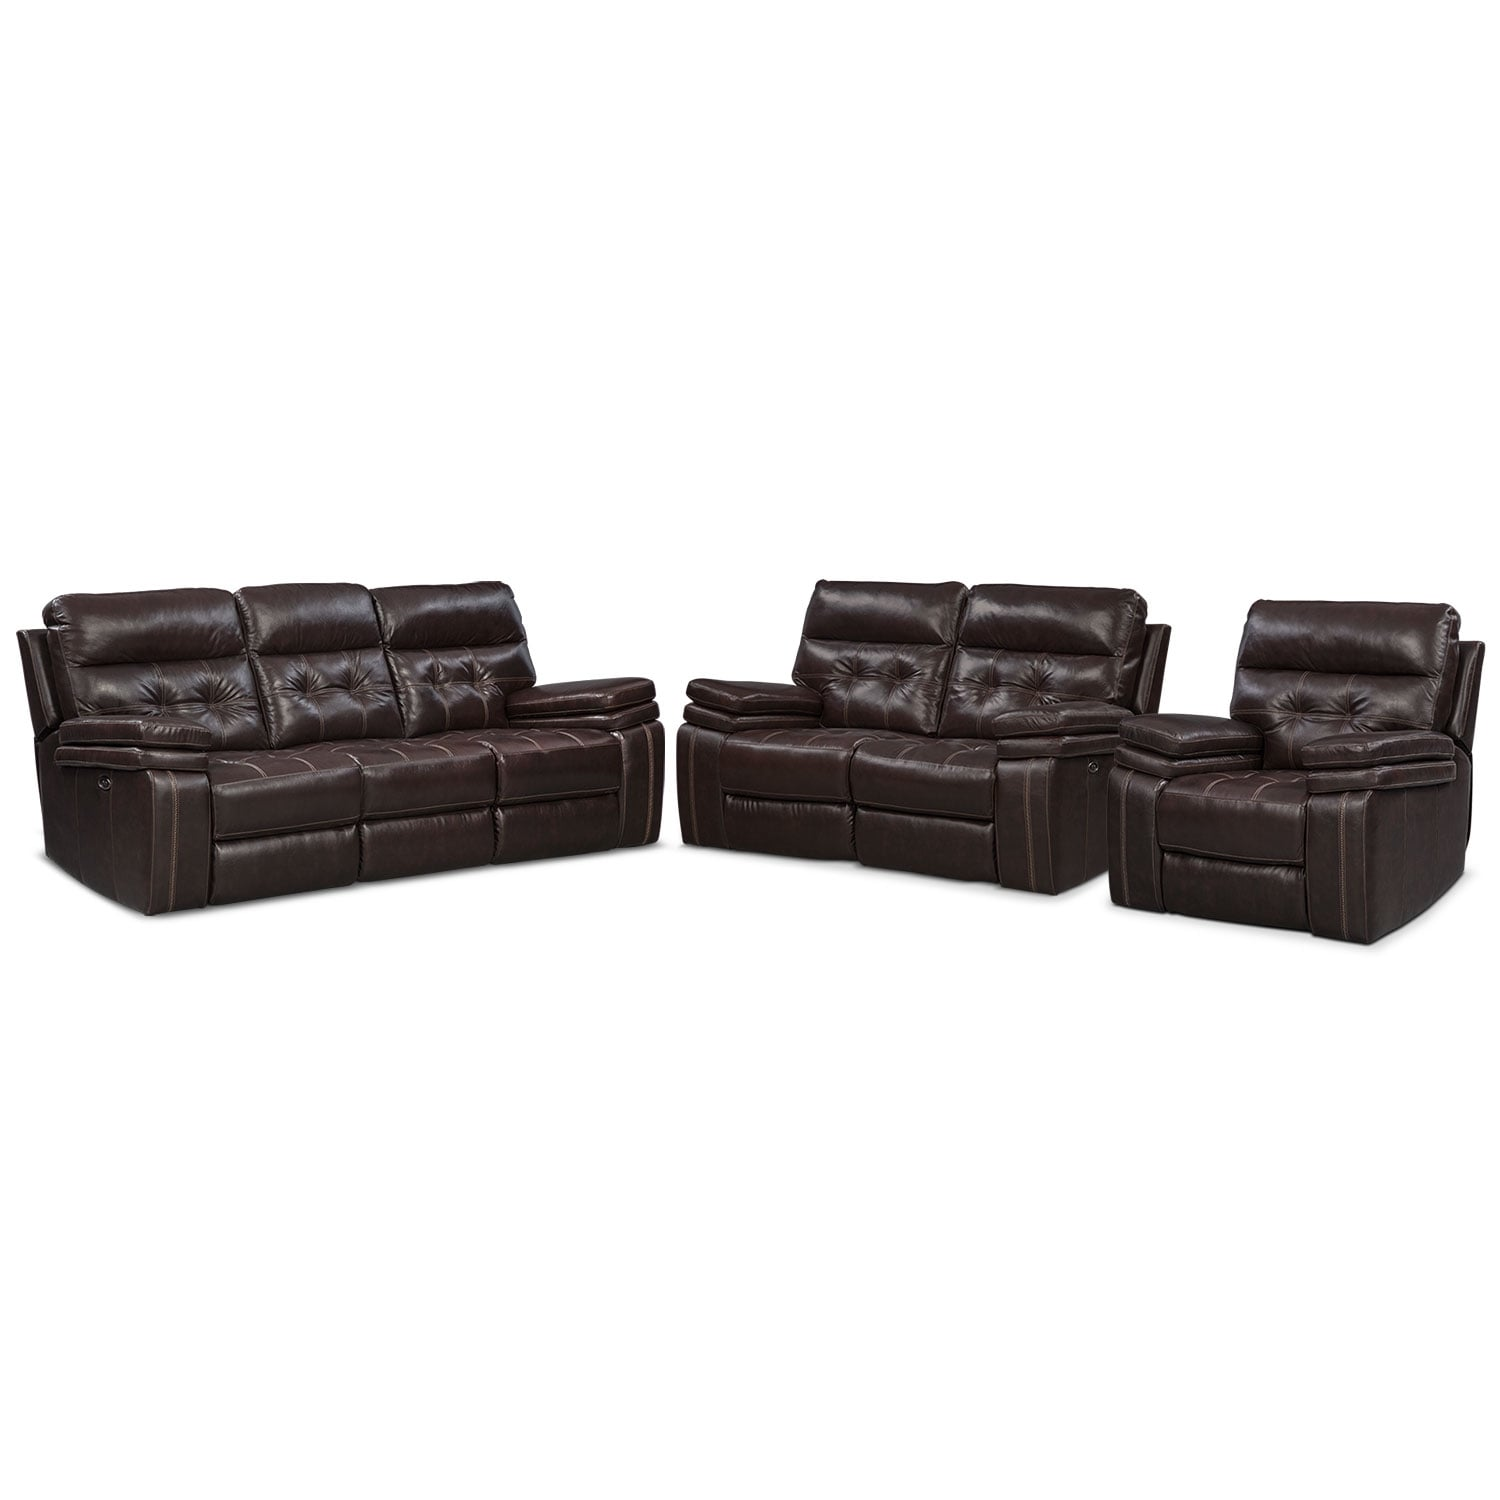 Living Room Furniture - Brisco Power Reclining Sofa, Reclining Loveseat and Glider Recliner Set - Brown